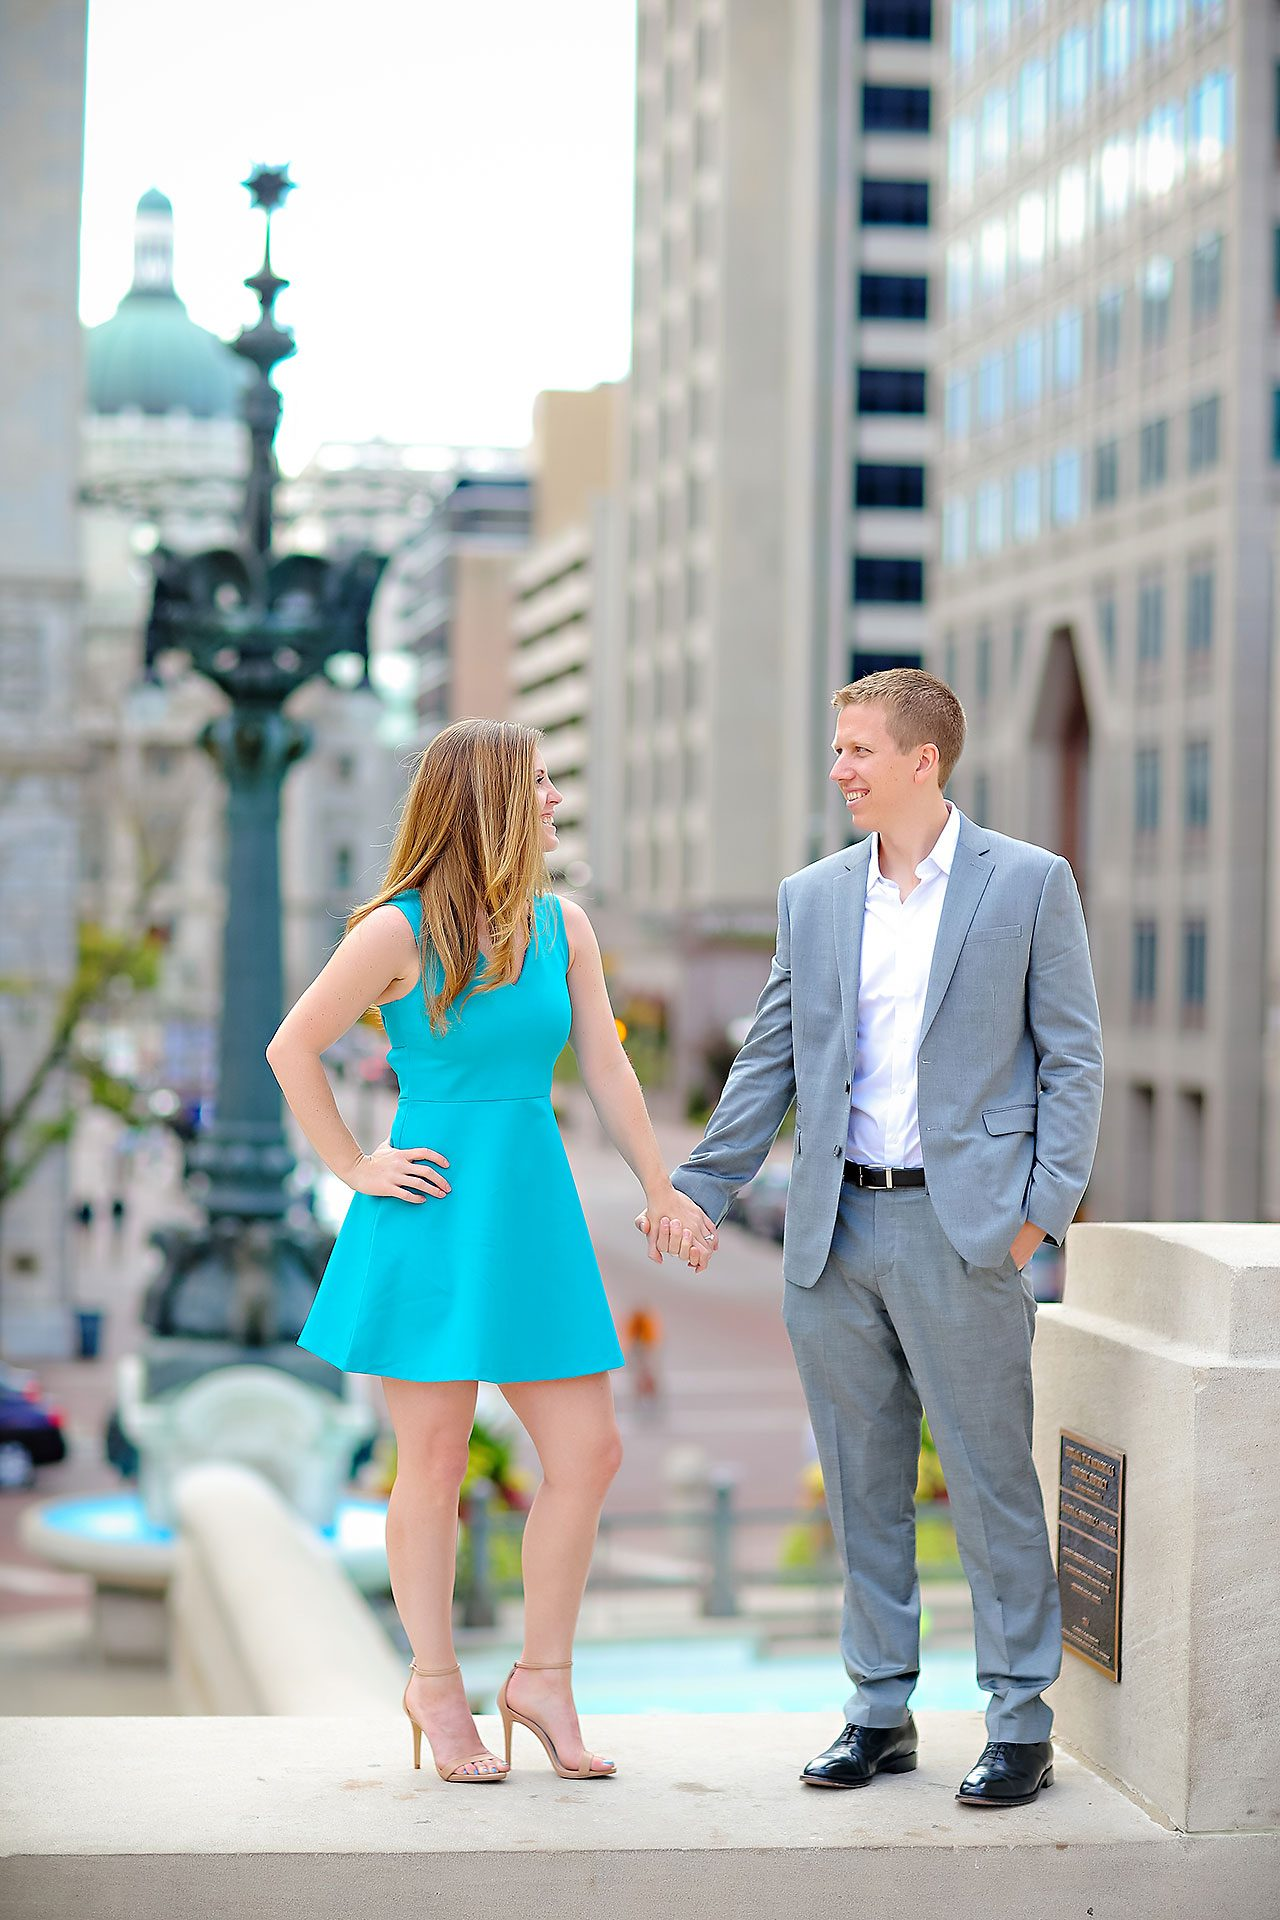 Chelsea Jeff Downtown Indy Engagement Session 015